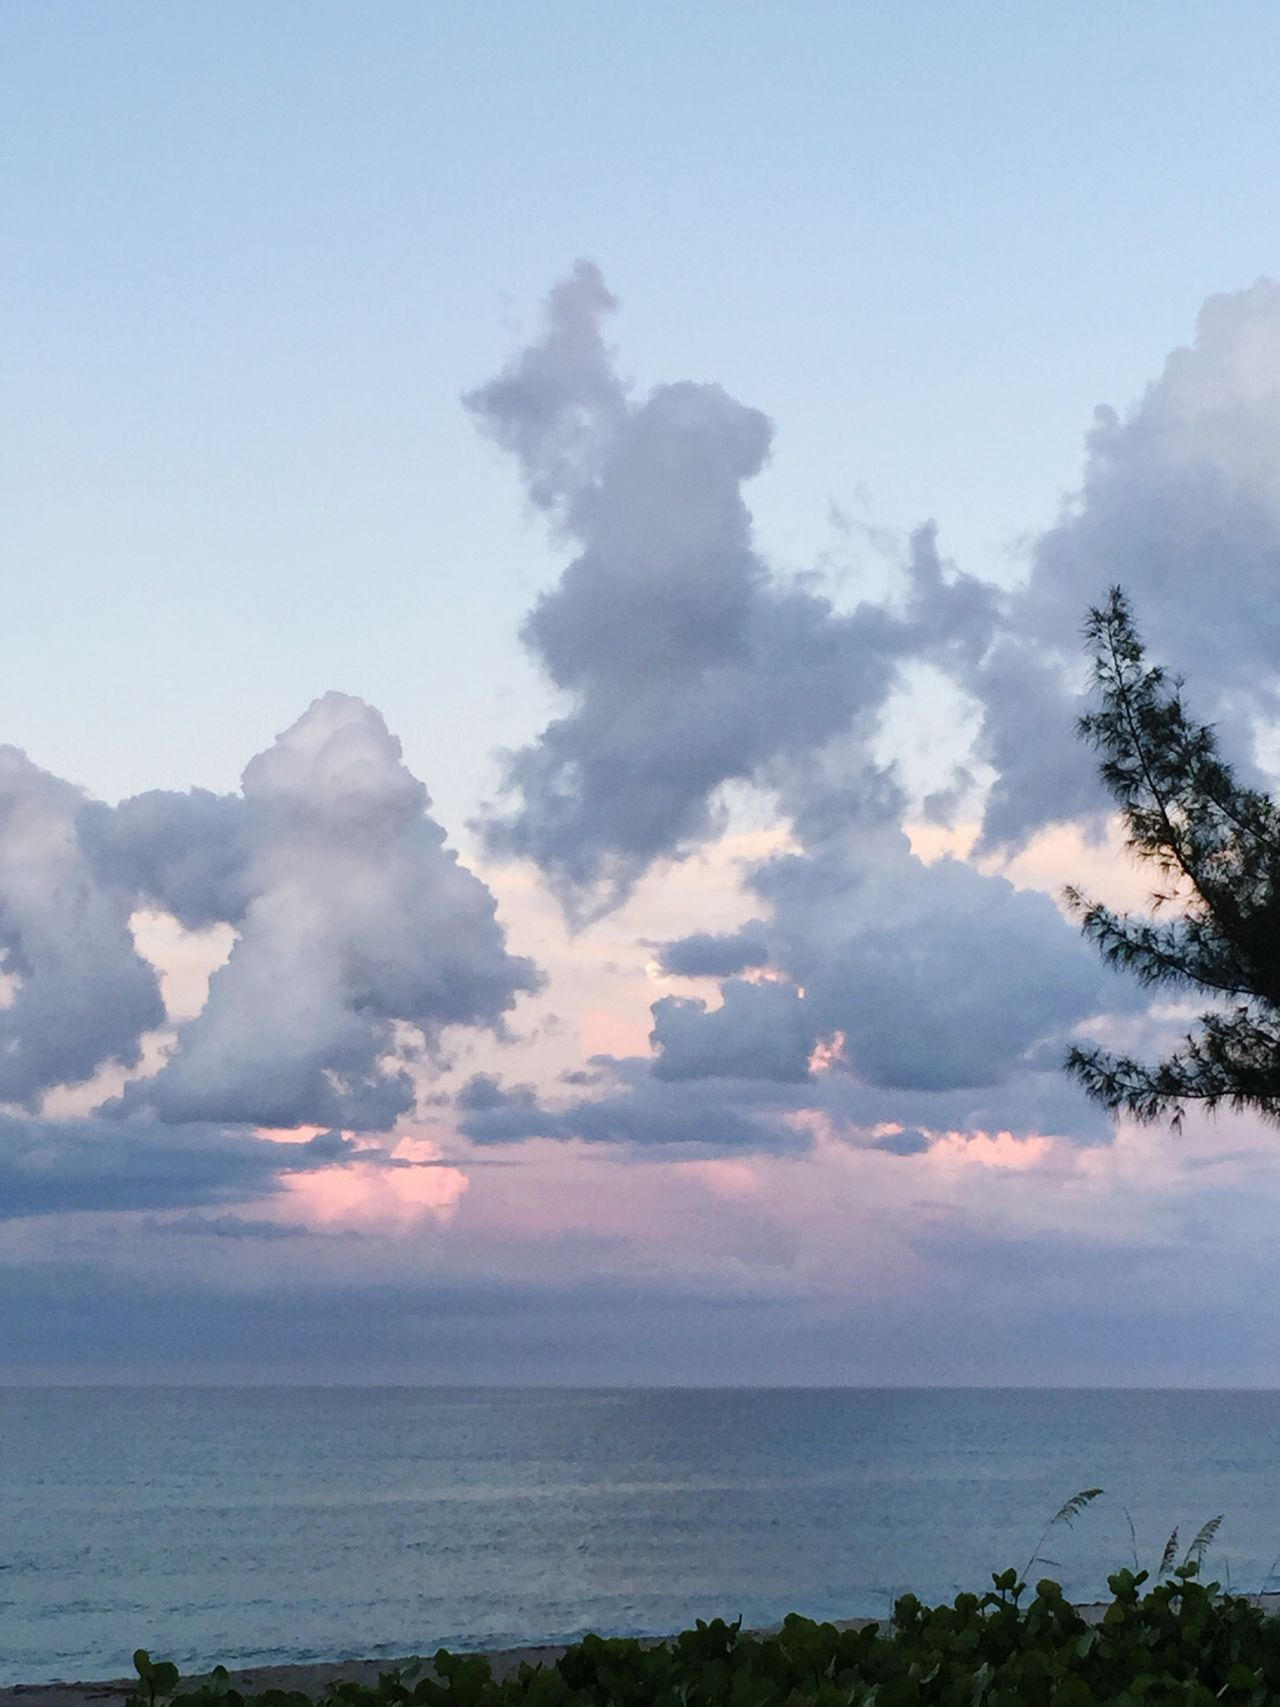 Sea Sky Nature Scenics Tranquil Scene Tranquility Beauty In Nature Water Outdoors No People Horizon Over Water Cloud - Sky Day Beach Tree